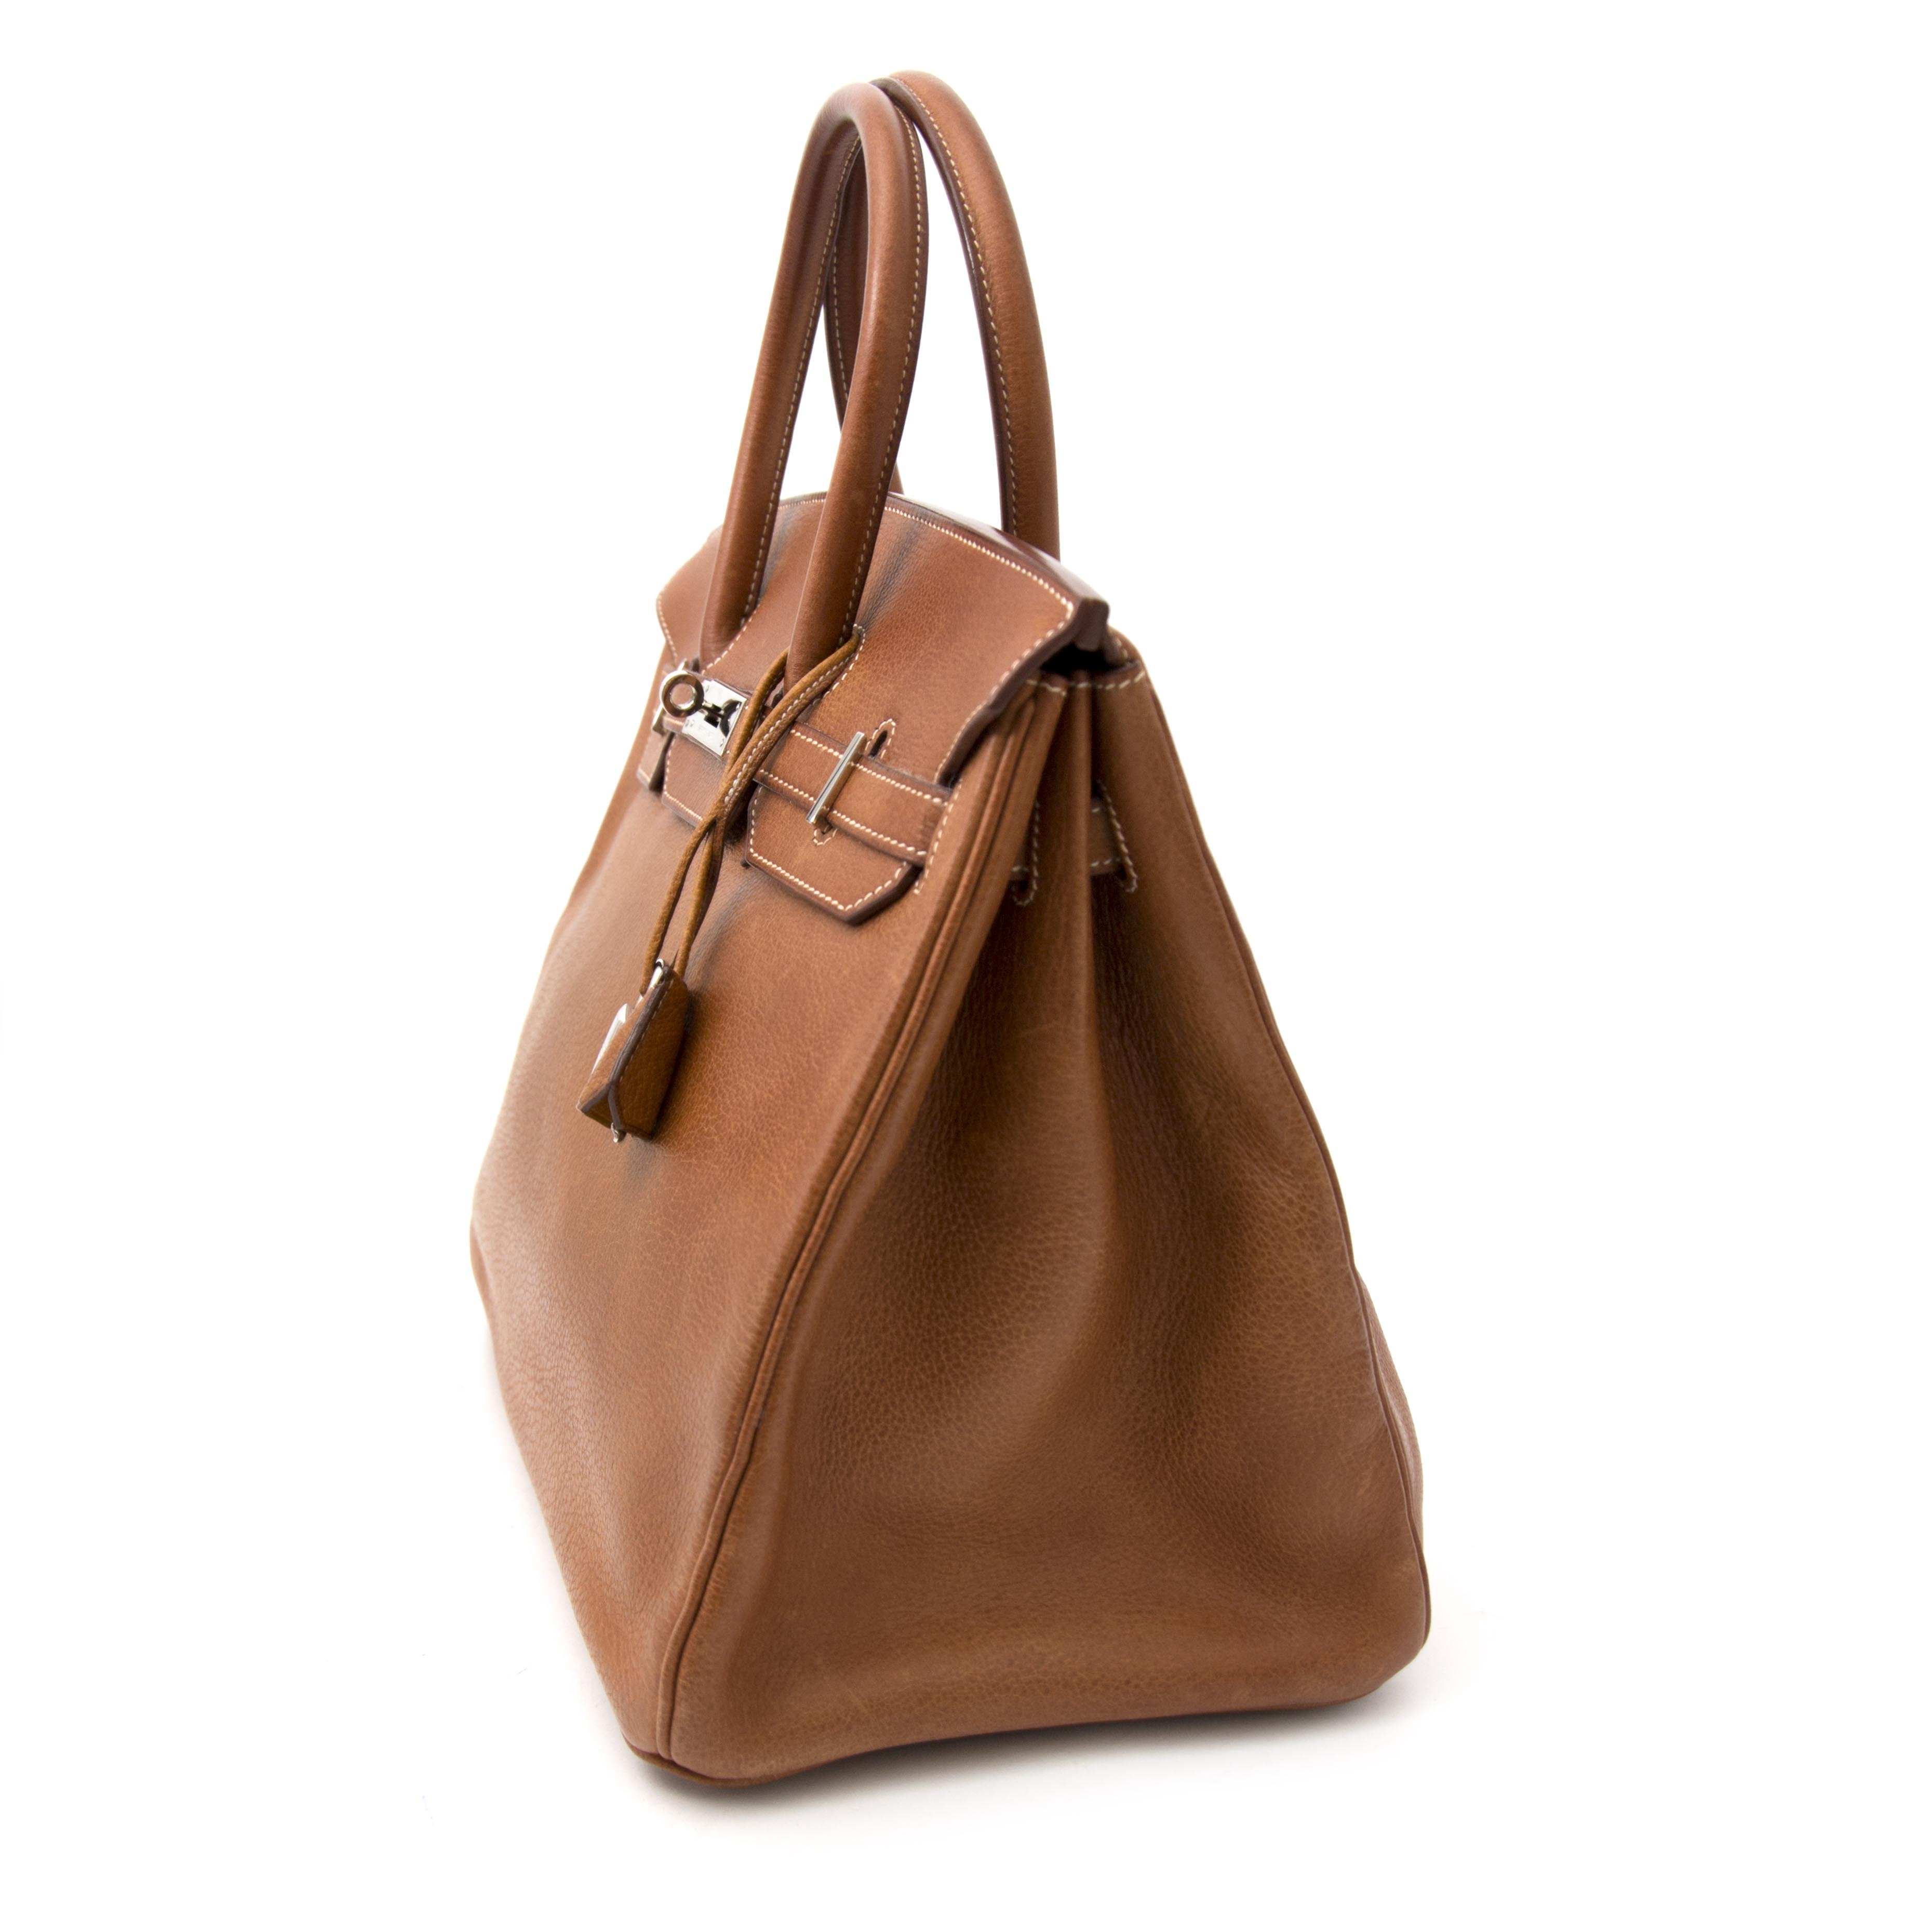 looking for a hermes birkin bag in baffalo leather? Buy it now at labellov.co for the best price